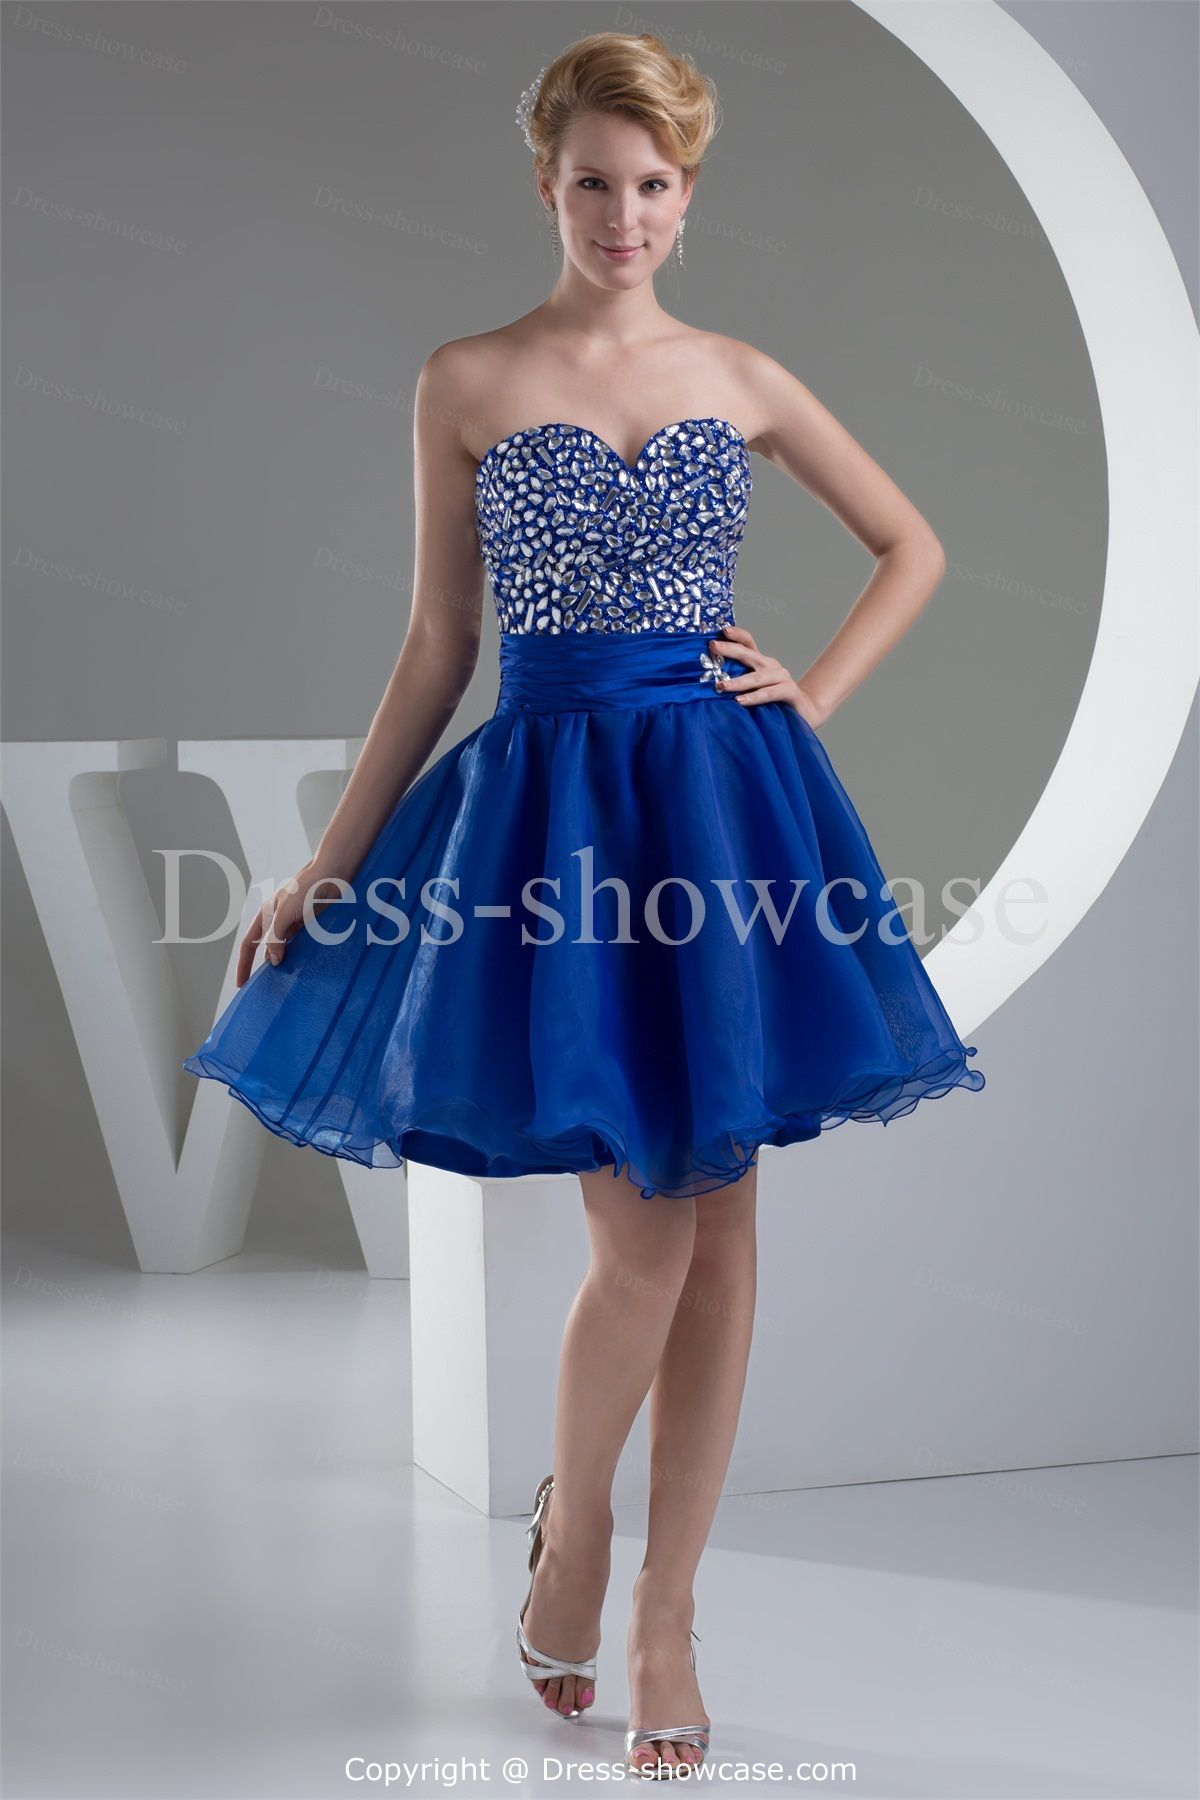 Royal Blue Short Beading Sweet 16 Dress Special Occasion Dresses Prom Dresses Blue Prom Dresses Short Blue Country Bridesmaid Dresses [ 1800 x 1200 Pixel ]